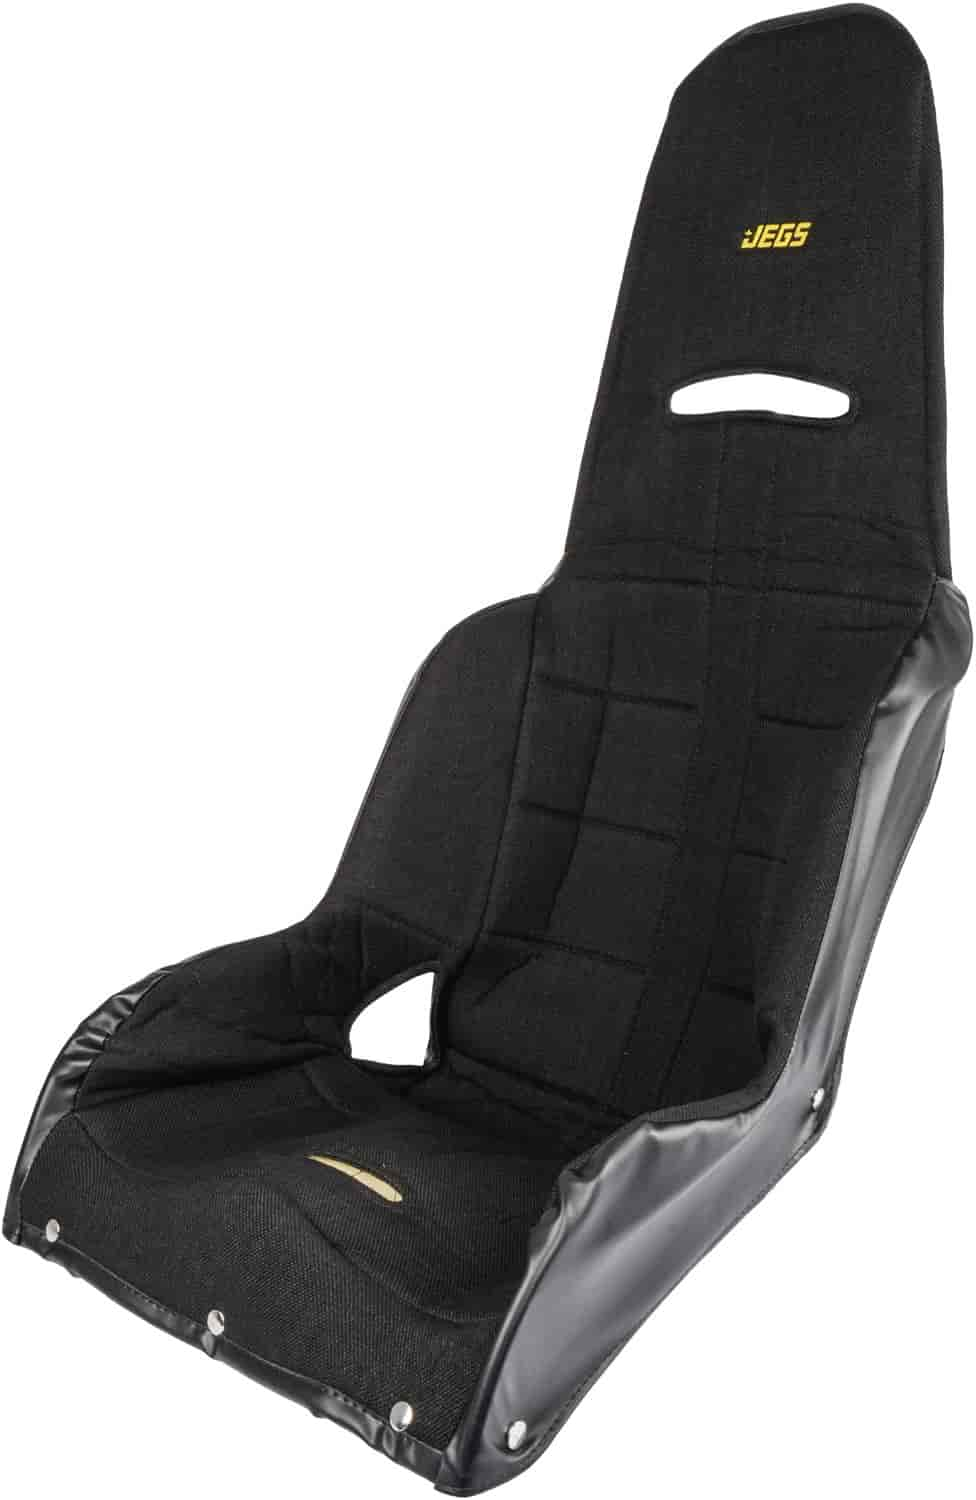 JEGS 702260-1: Racing Seat Cover 16\